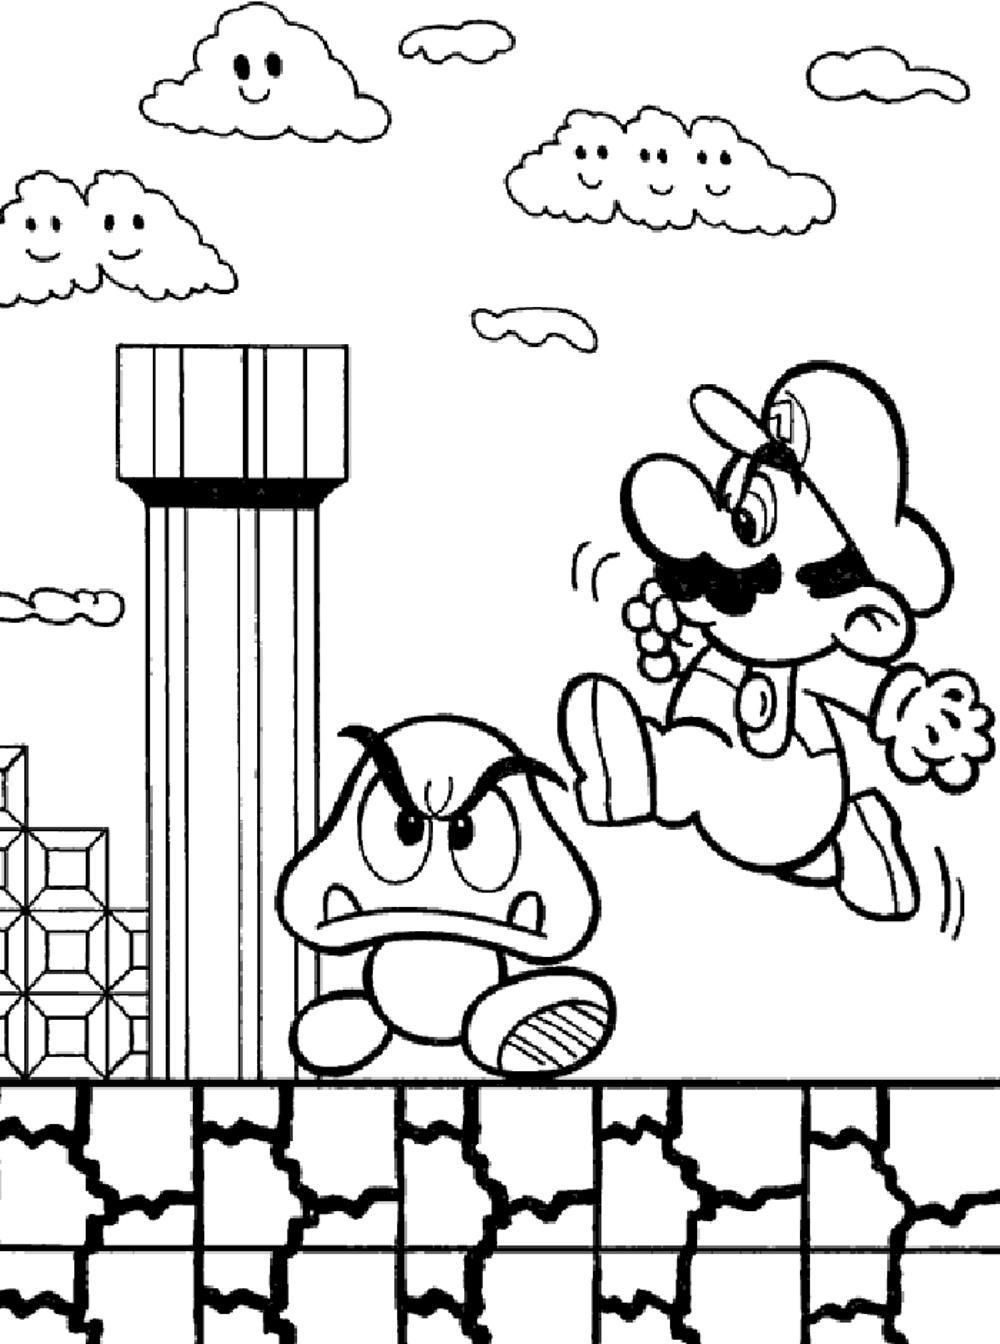 Mario Coloring Page1 1211—926 Coloring Pinterest Printable – Free Collection Of Super Mario Coloring Pages Bonnieleepanda Gallery